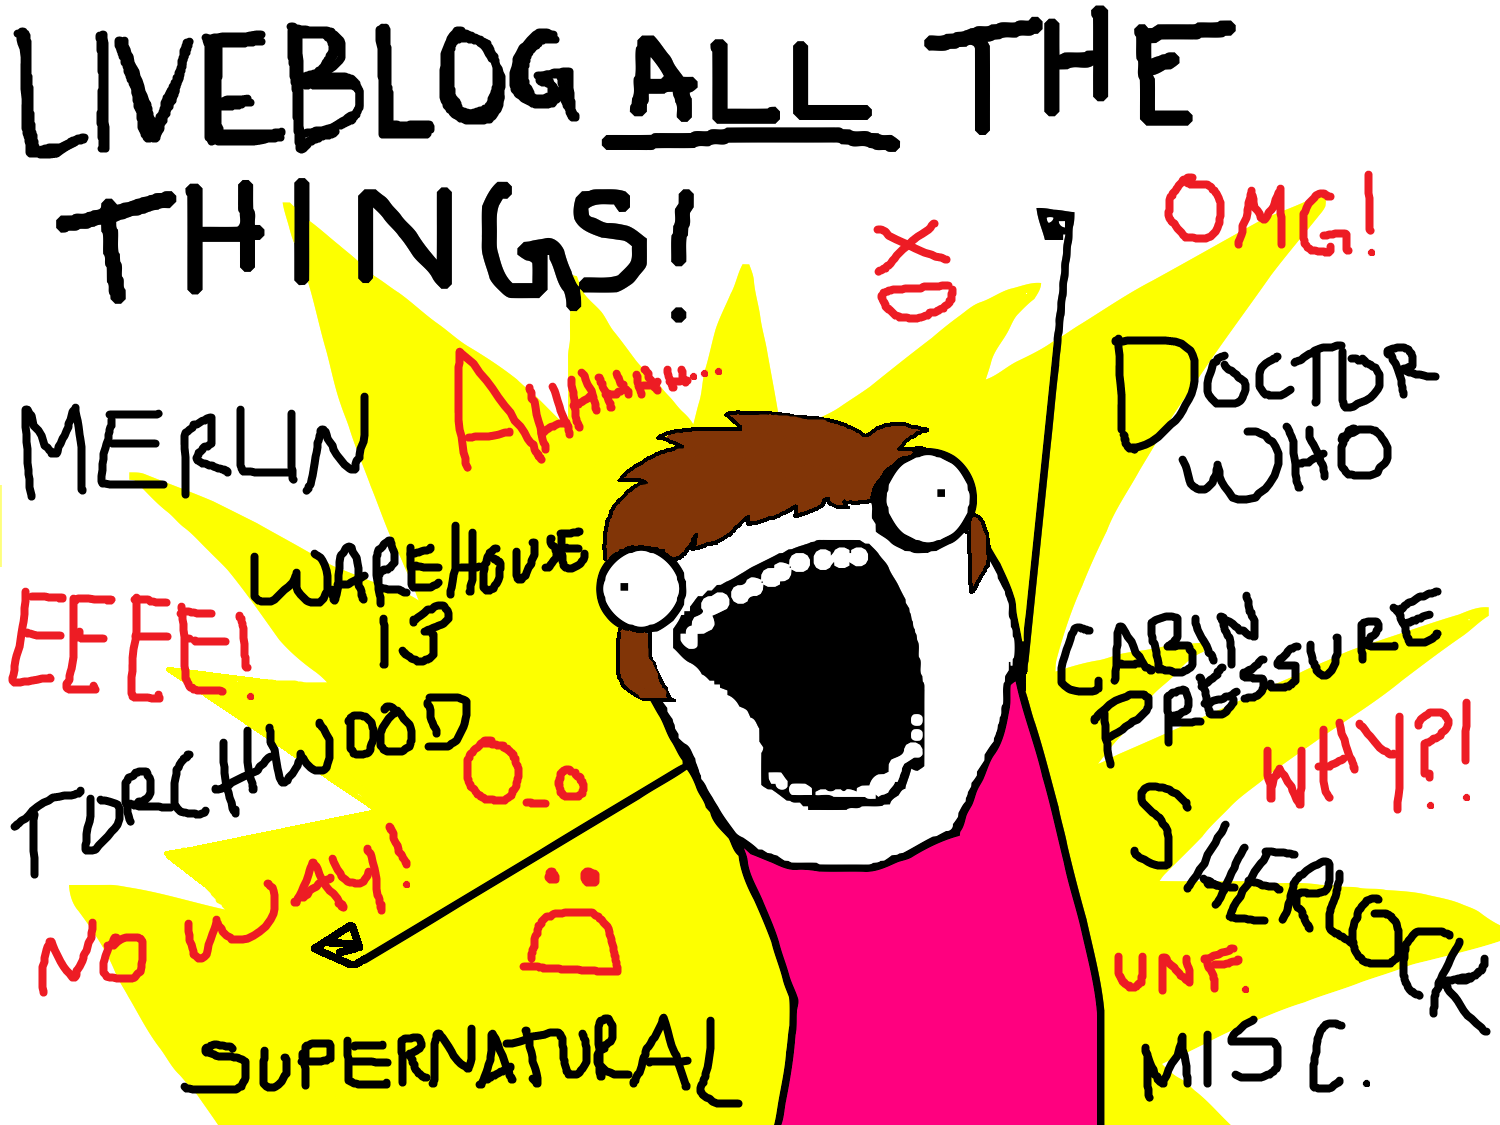 LIVEBLOG ALL THE THINGS!